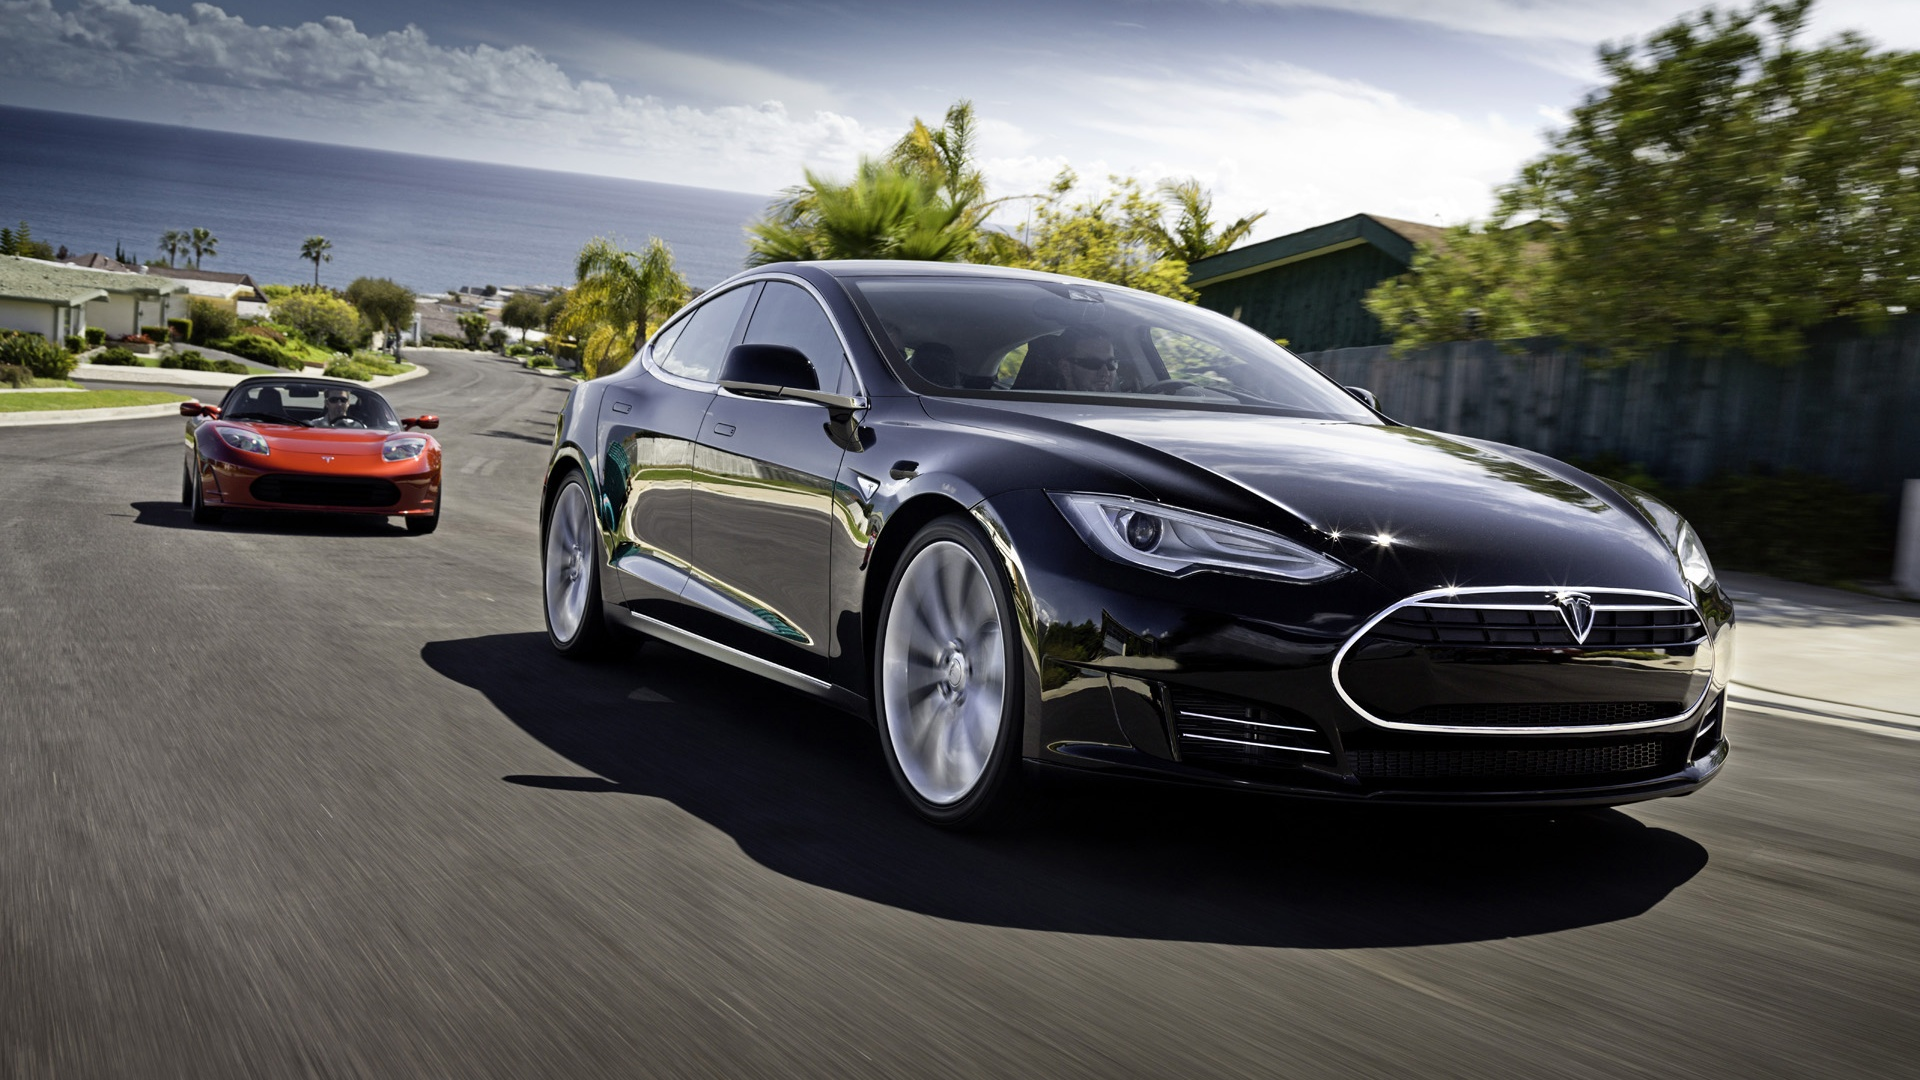 ws_2012_Tesla_Model_S_Black_Motion_1920x1080.jpg